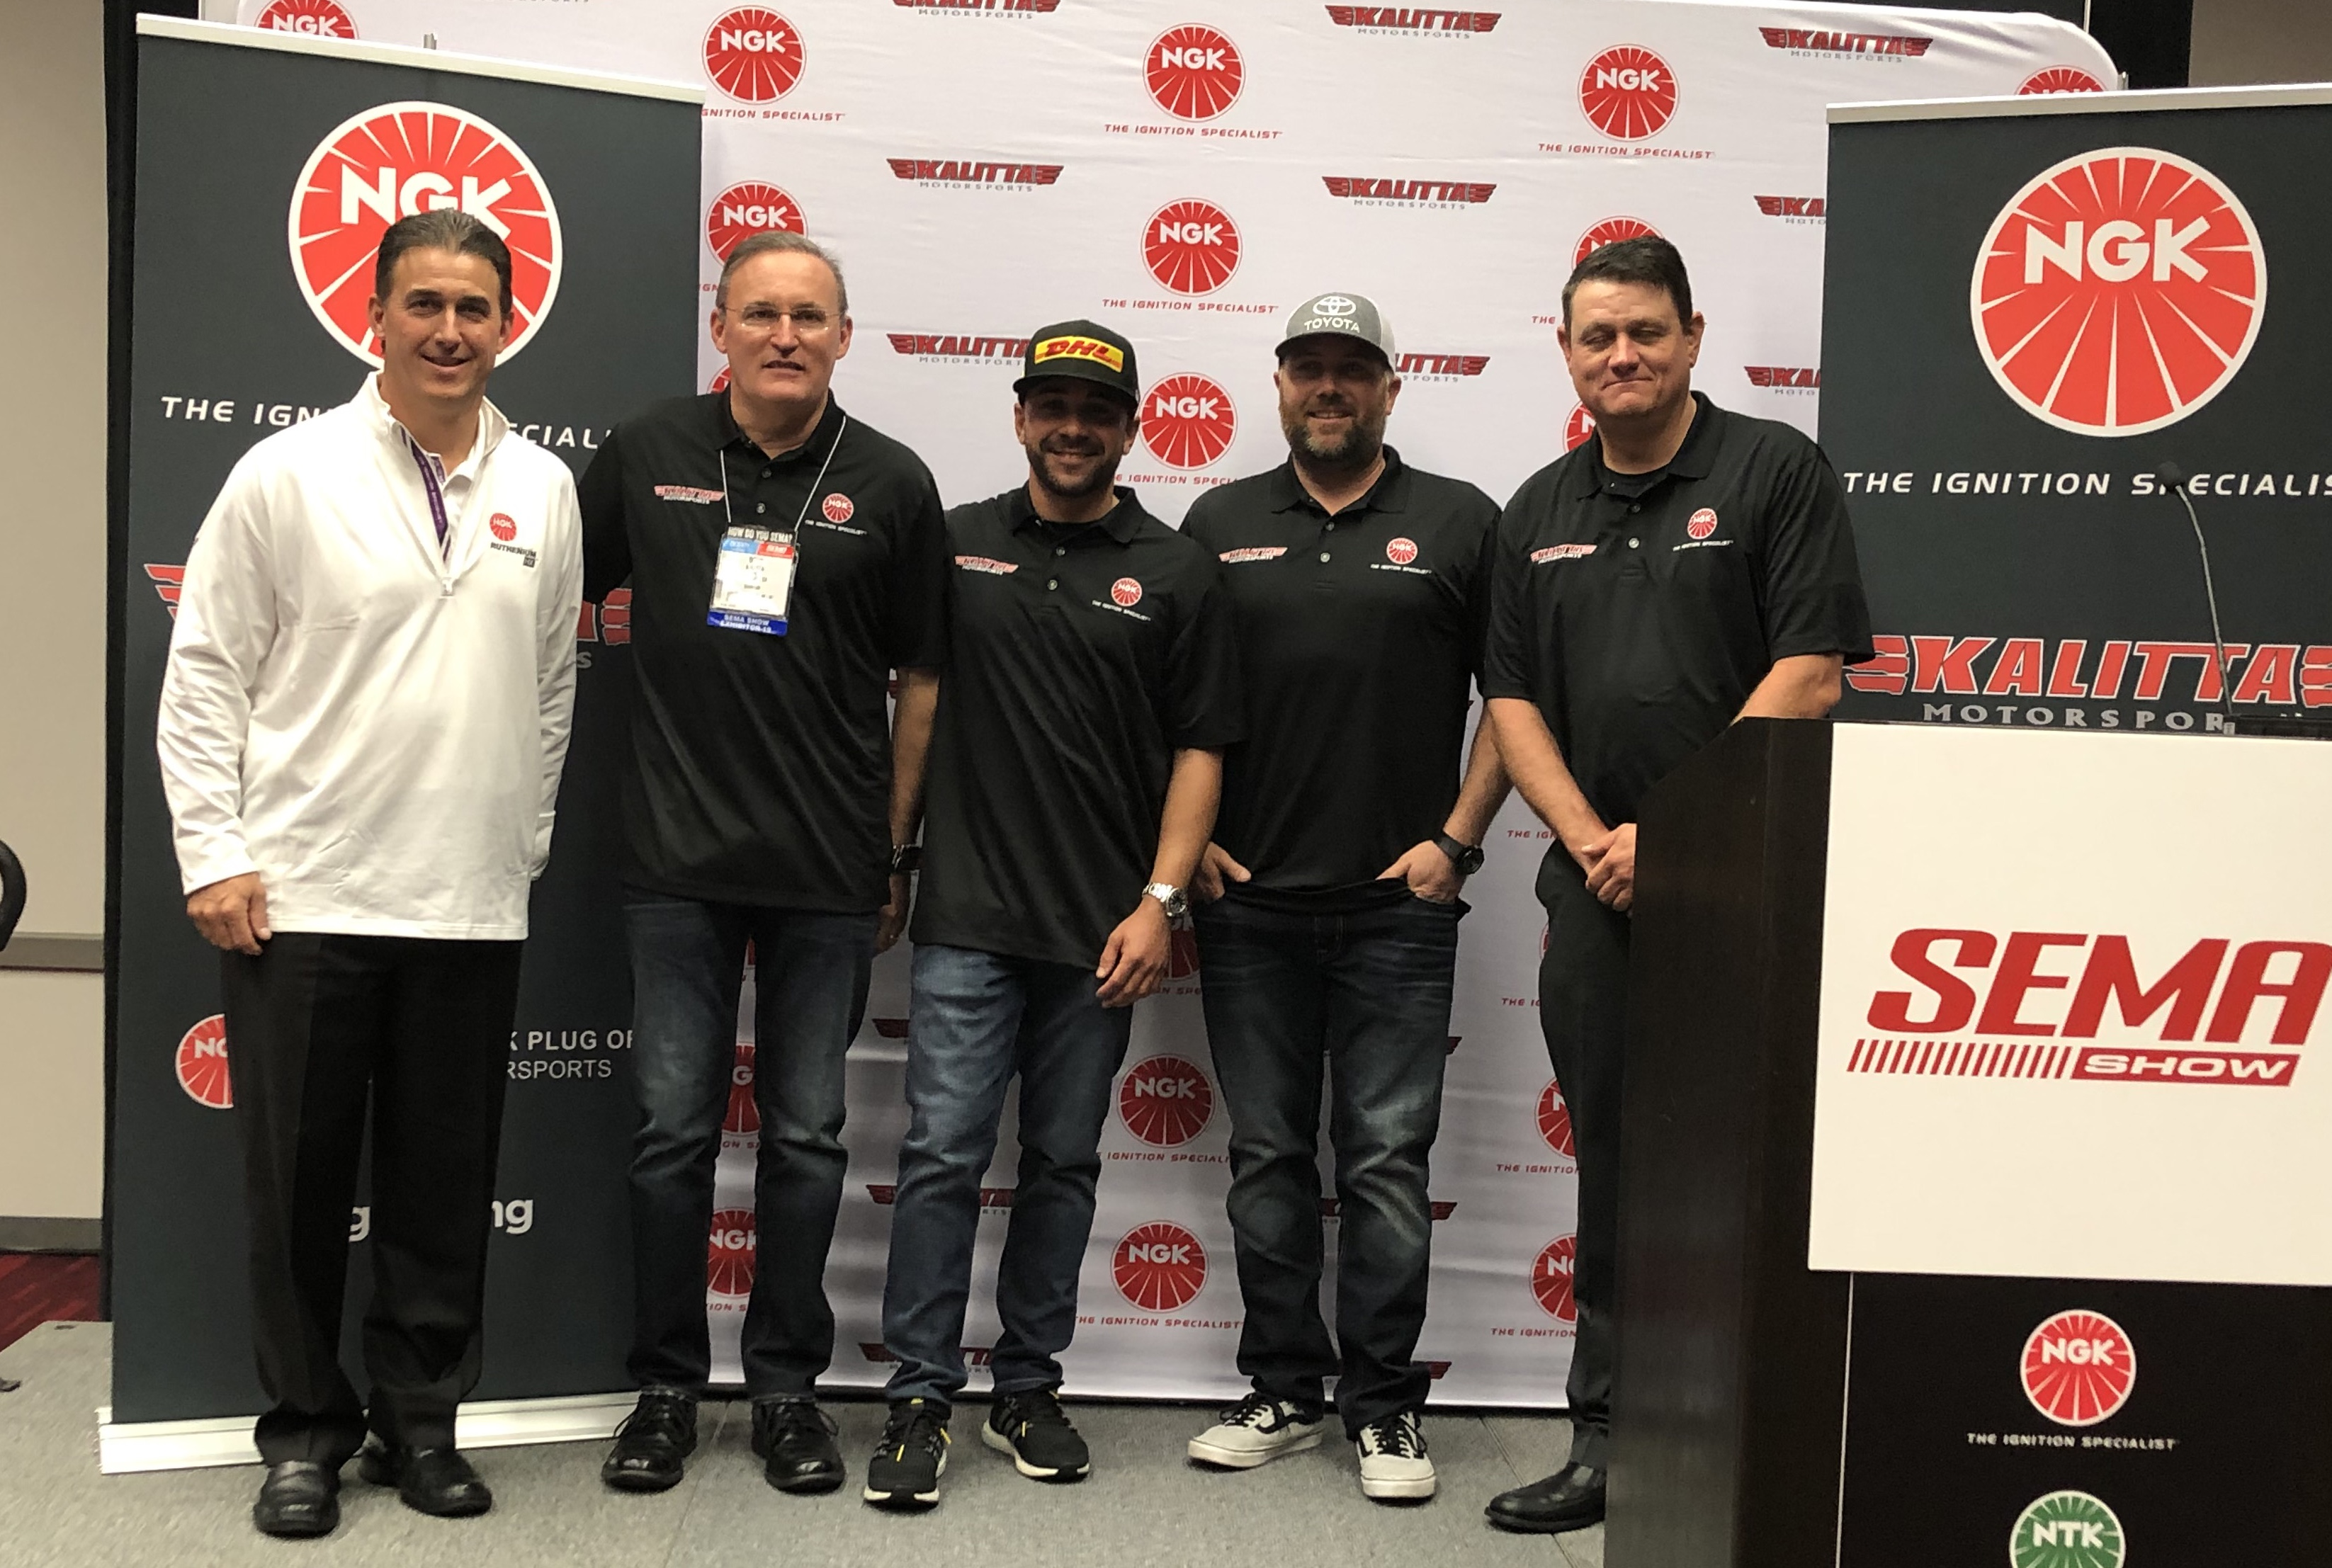 NGK Vice President of Aftermarket Brian Norko, Kalitta Motorsports GM Chad Head, and team Doug Kalitta, J.R. Todd, Shawn Langdon at NGK Spark Plugs,,Kalitta Motorsports sponsorship announcement during SEMA